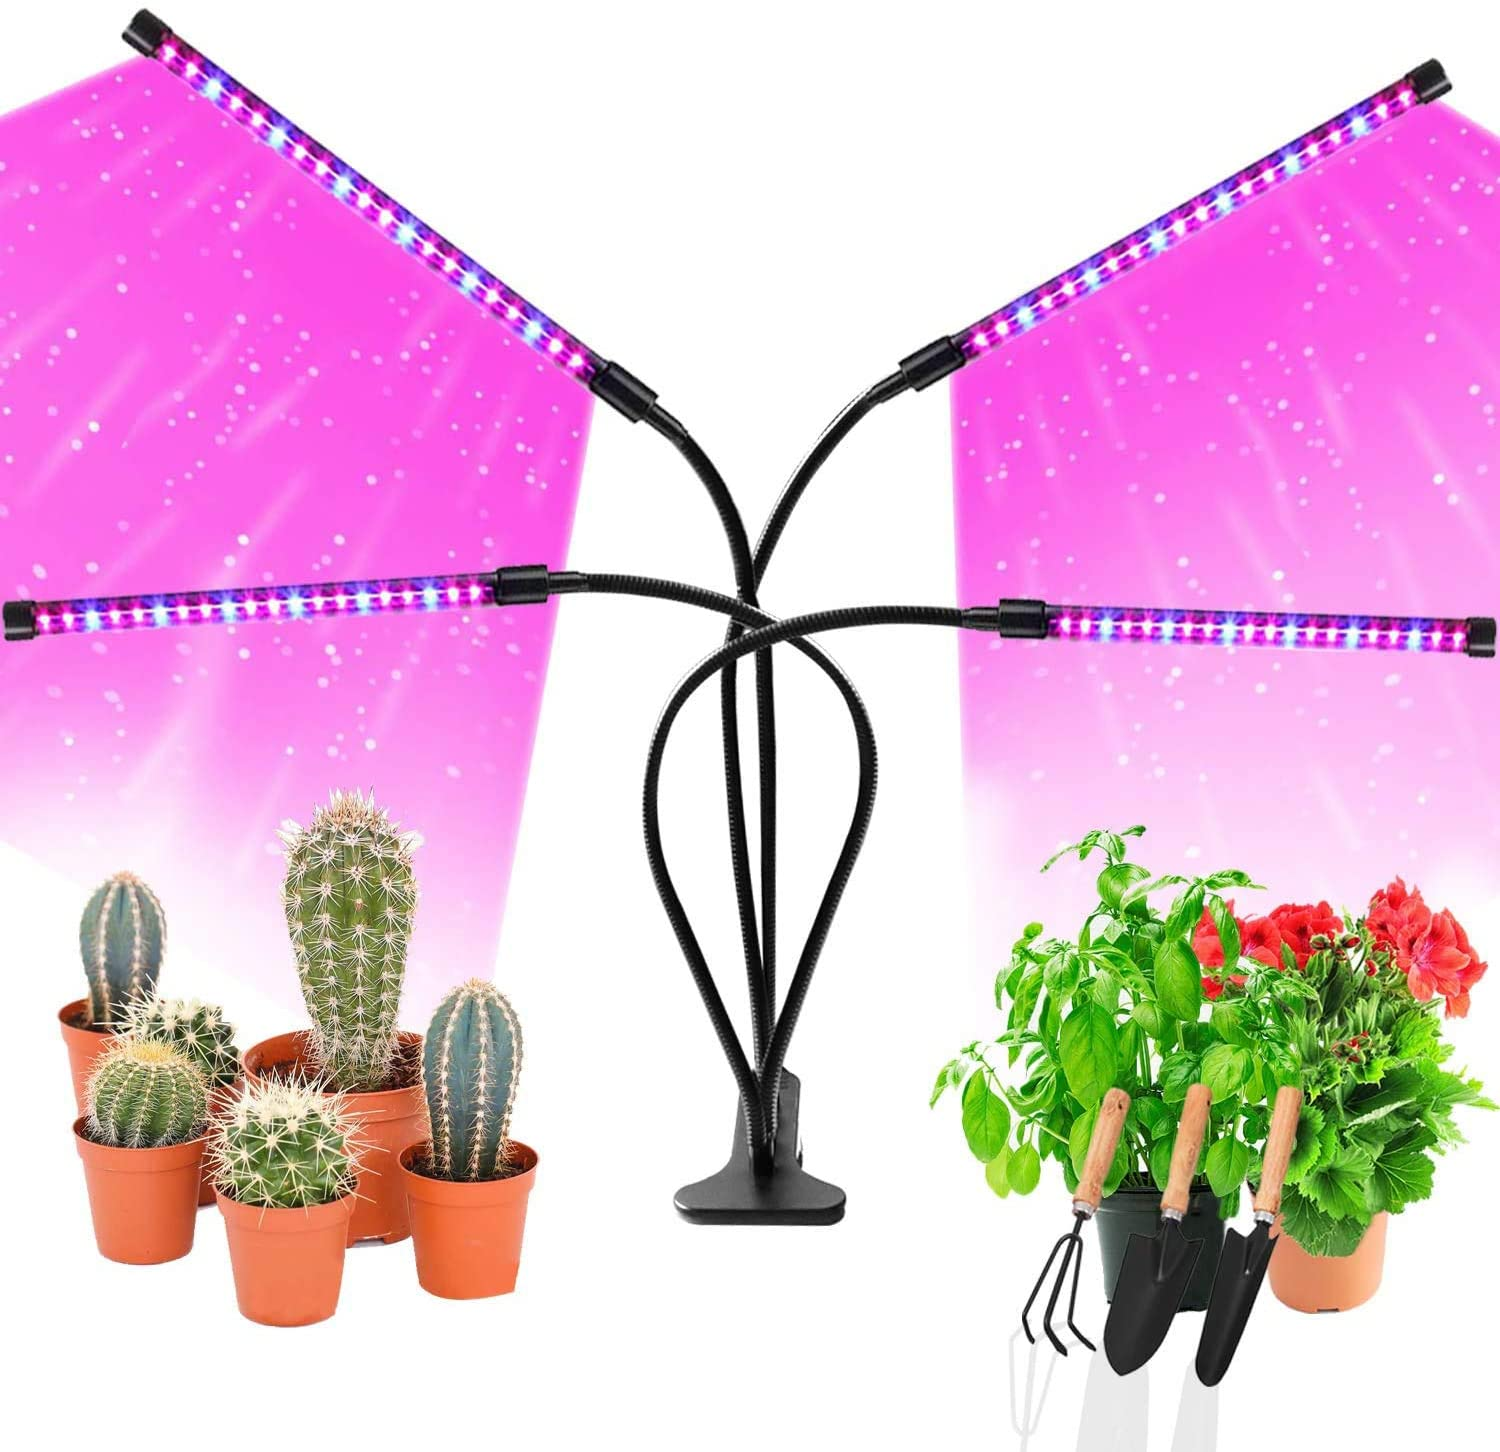 80w USB Flexible LED Plant Growth Light with Red Aquarium Hydroponic Plant Cultivation with Light